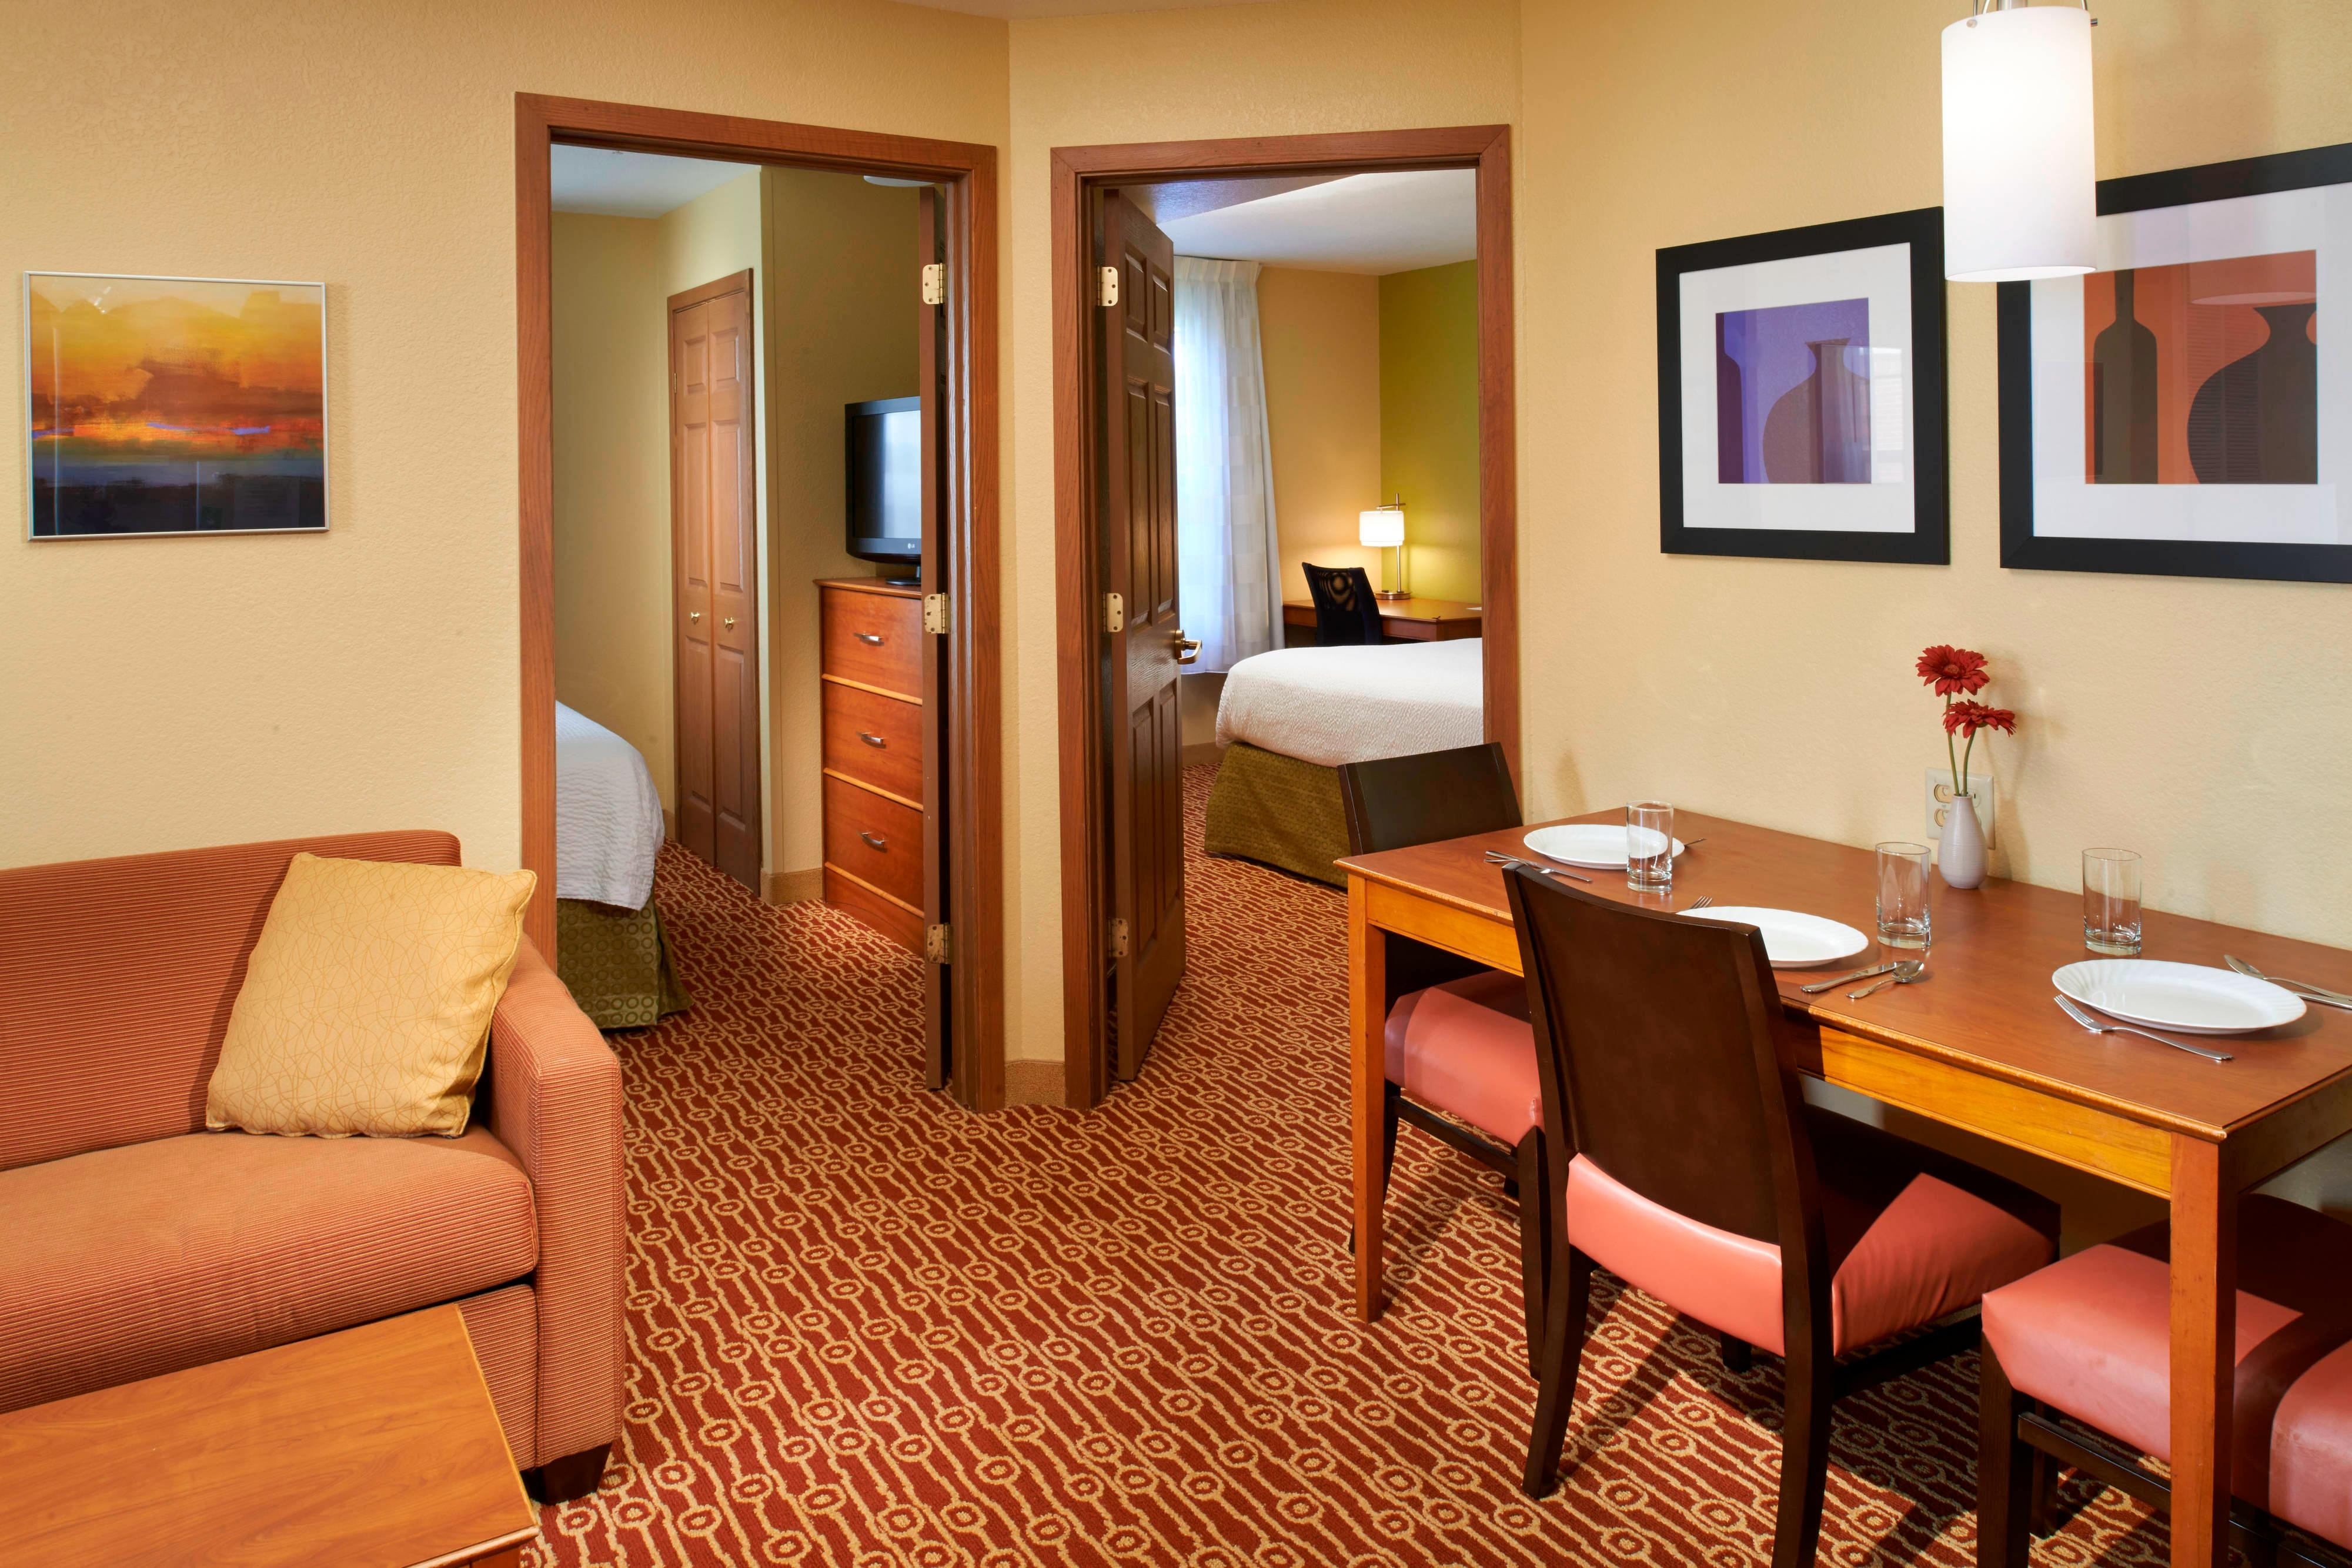 Extended stay novi michigan hotels towneplace suites - Hotels that have 2 bedroom suites ...